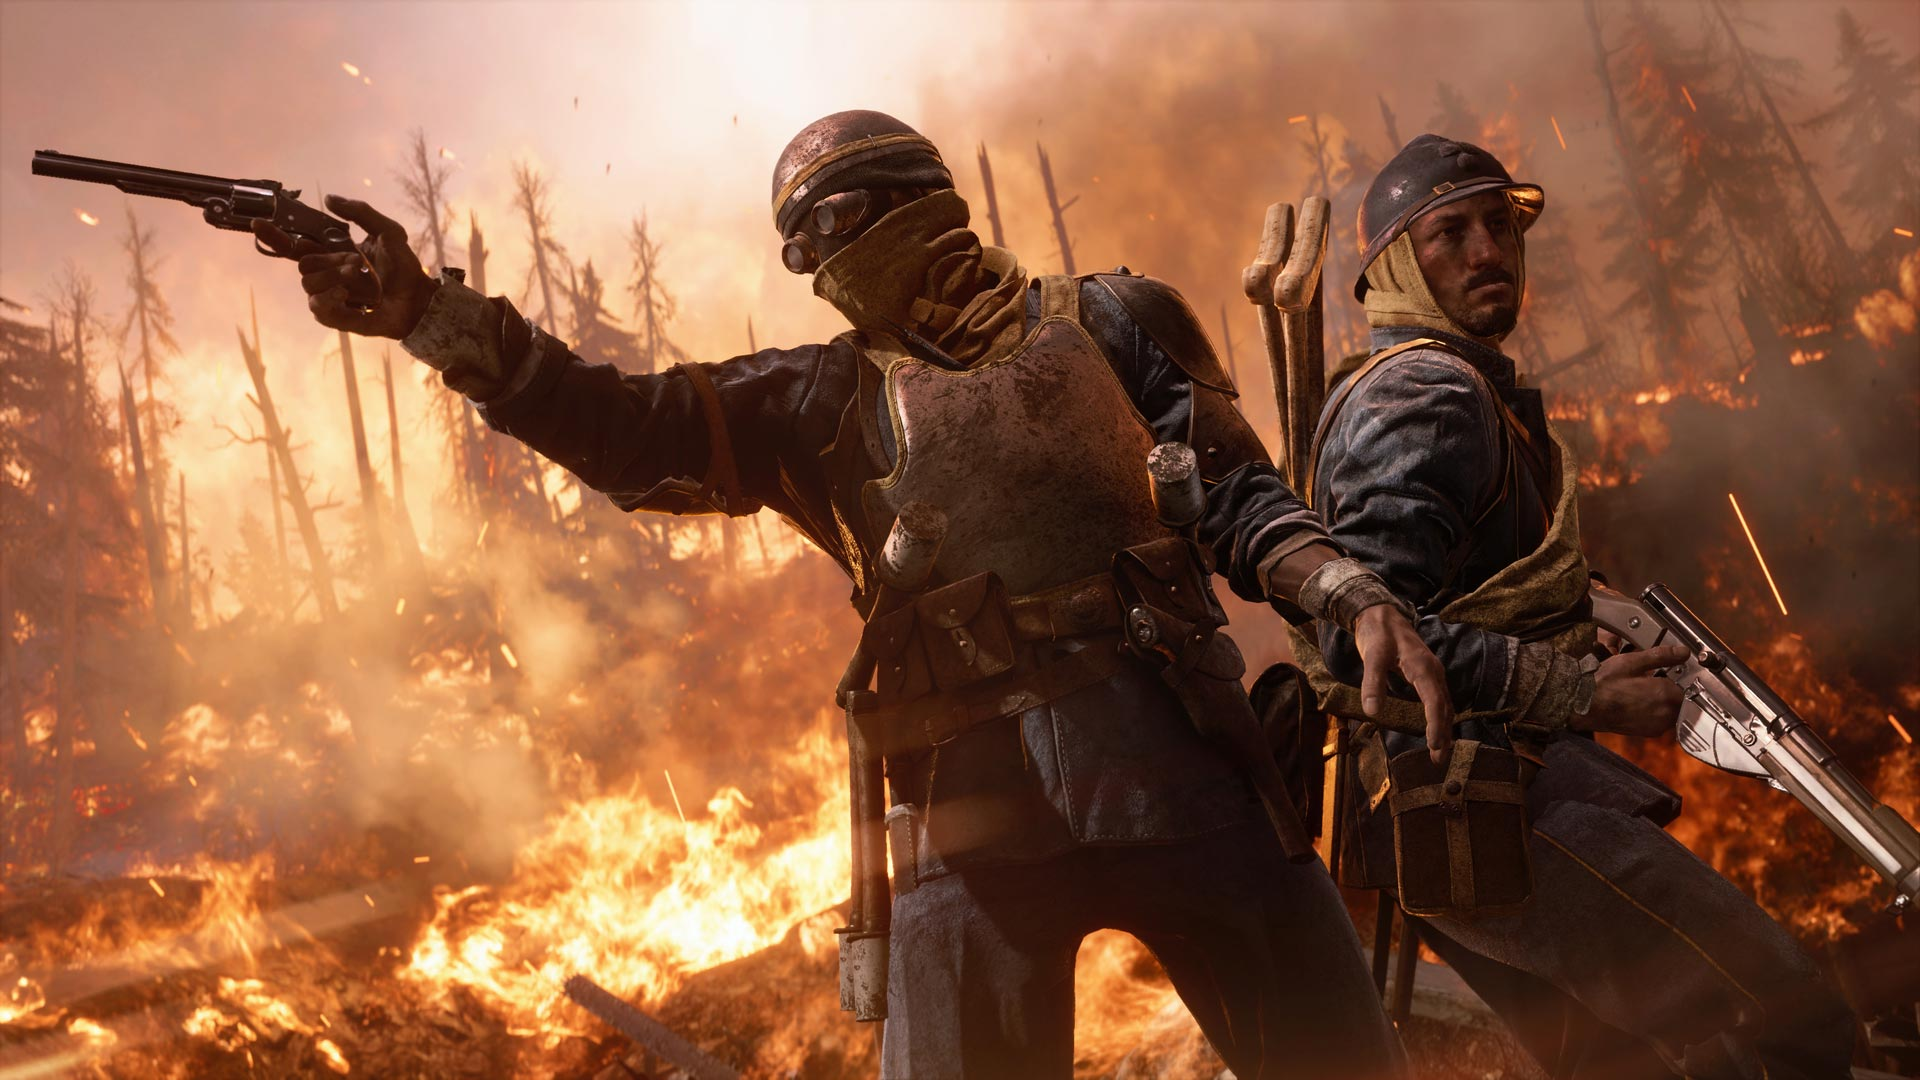 Battlefield 1 In The Name Of The Tsar To Release On September 5th